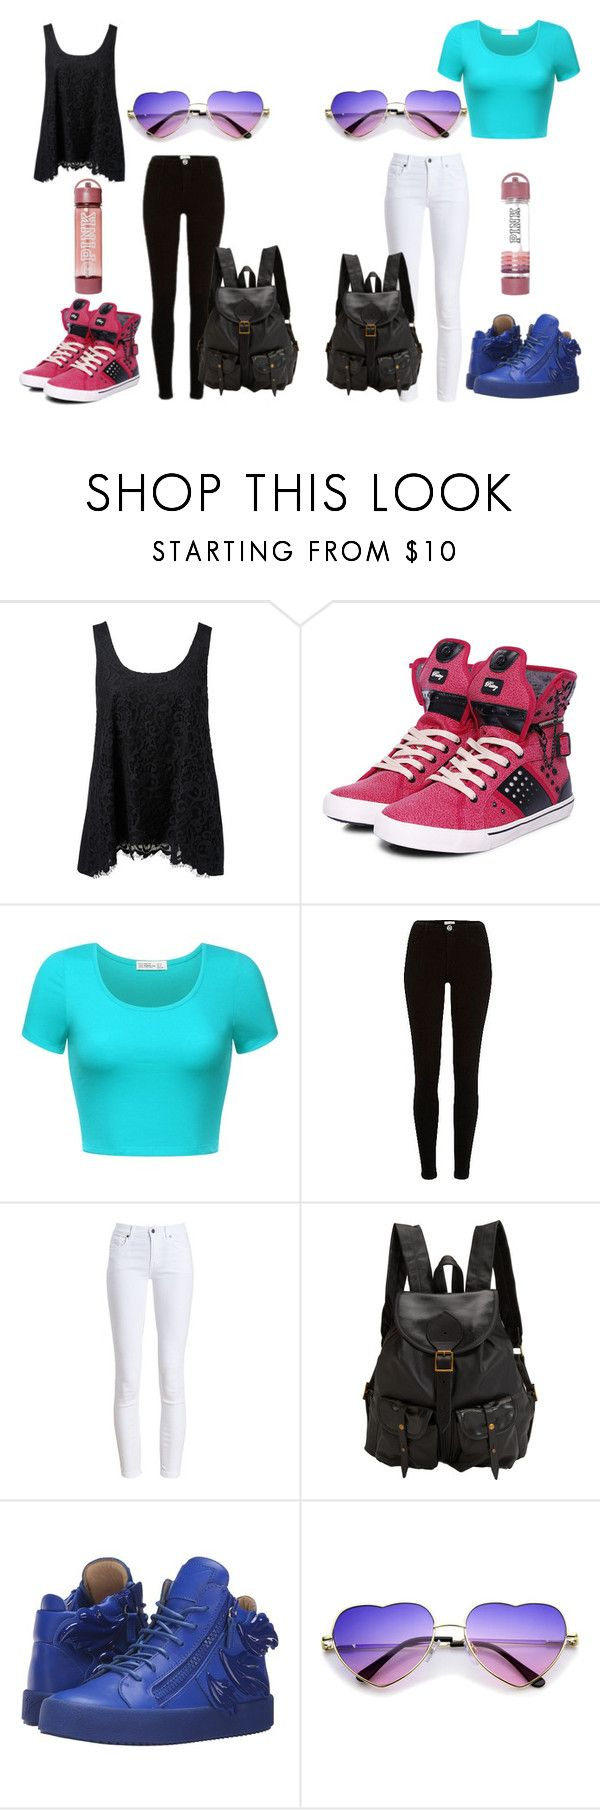 """""""Camp Besties"""" by lollipopwhiskers on Polyvore featuring Forever New, Pastry, River Island, Barbour, Jas M.B., Giuseppe Zanotti, Victoria's Secret, Summer, cute and camp"""